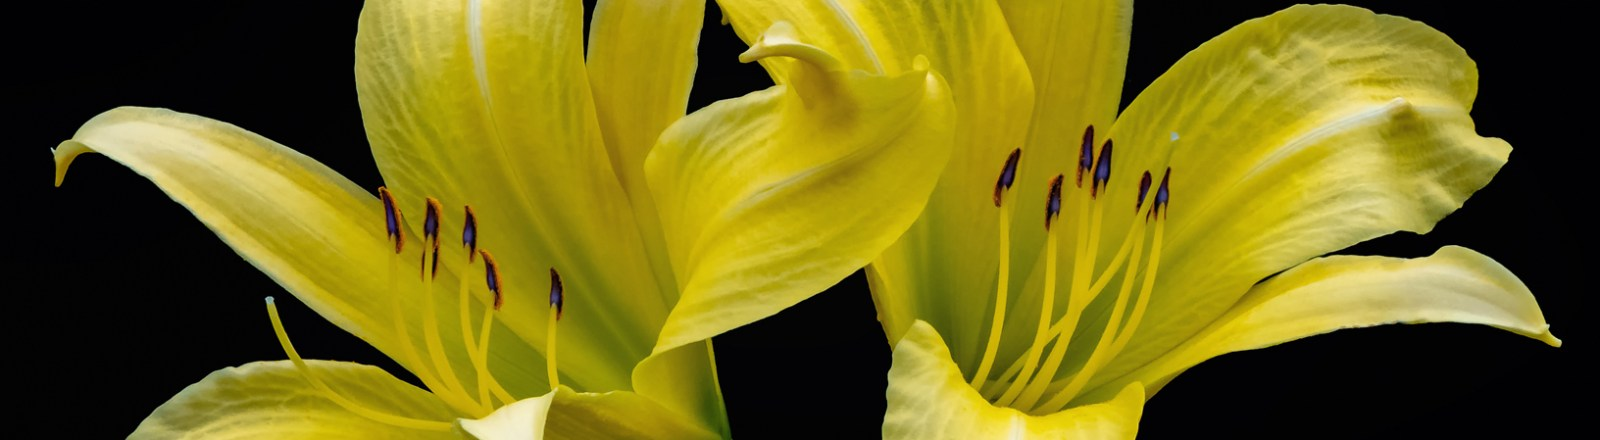 Lilies on Black Backgrounds (2 of 10)